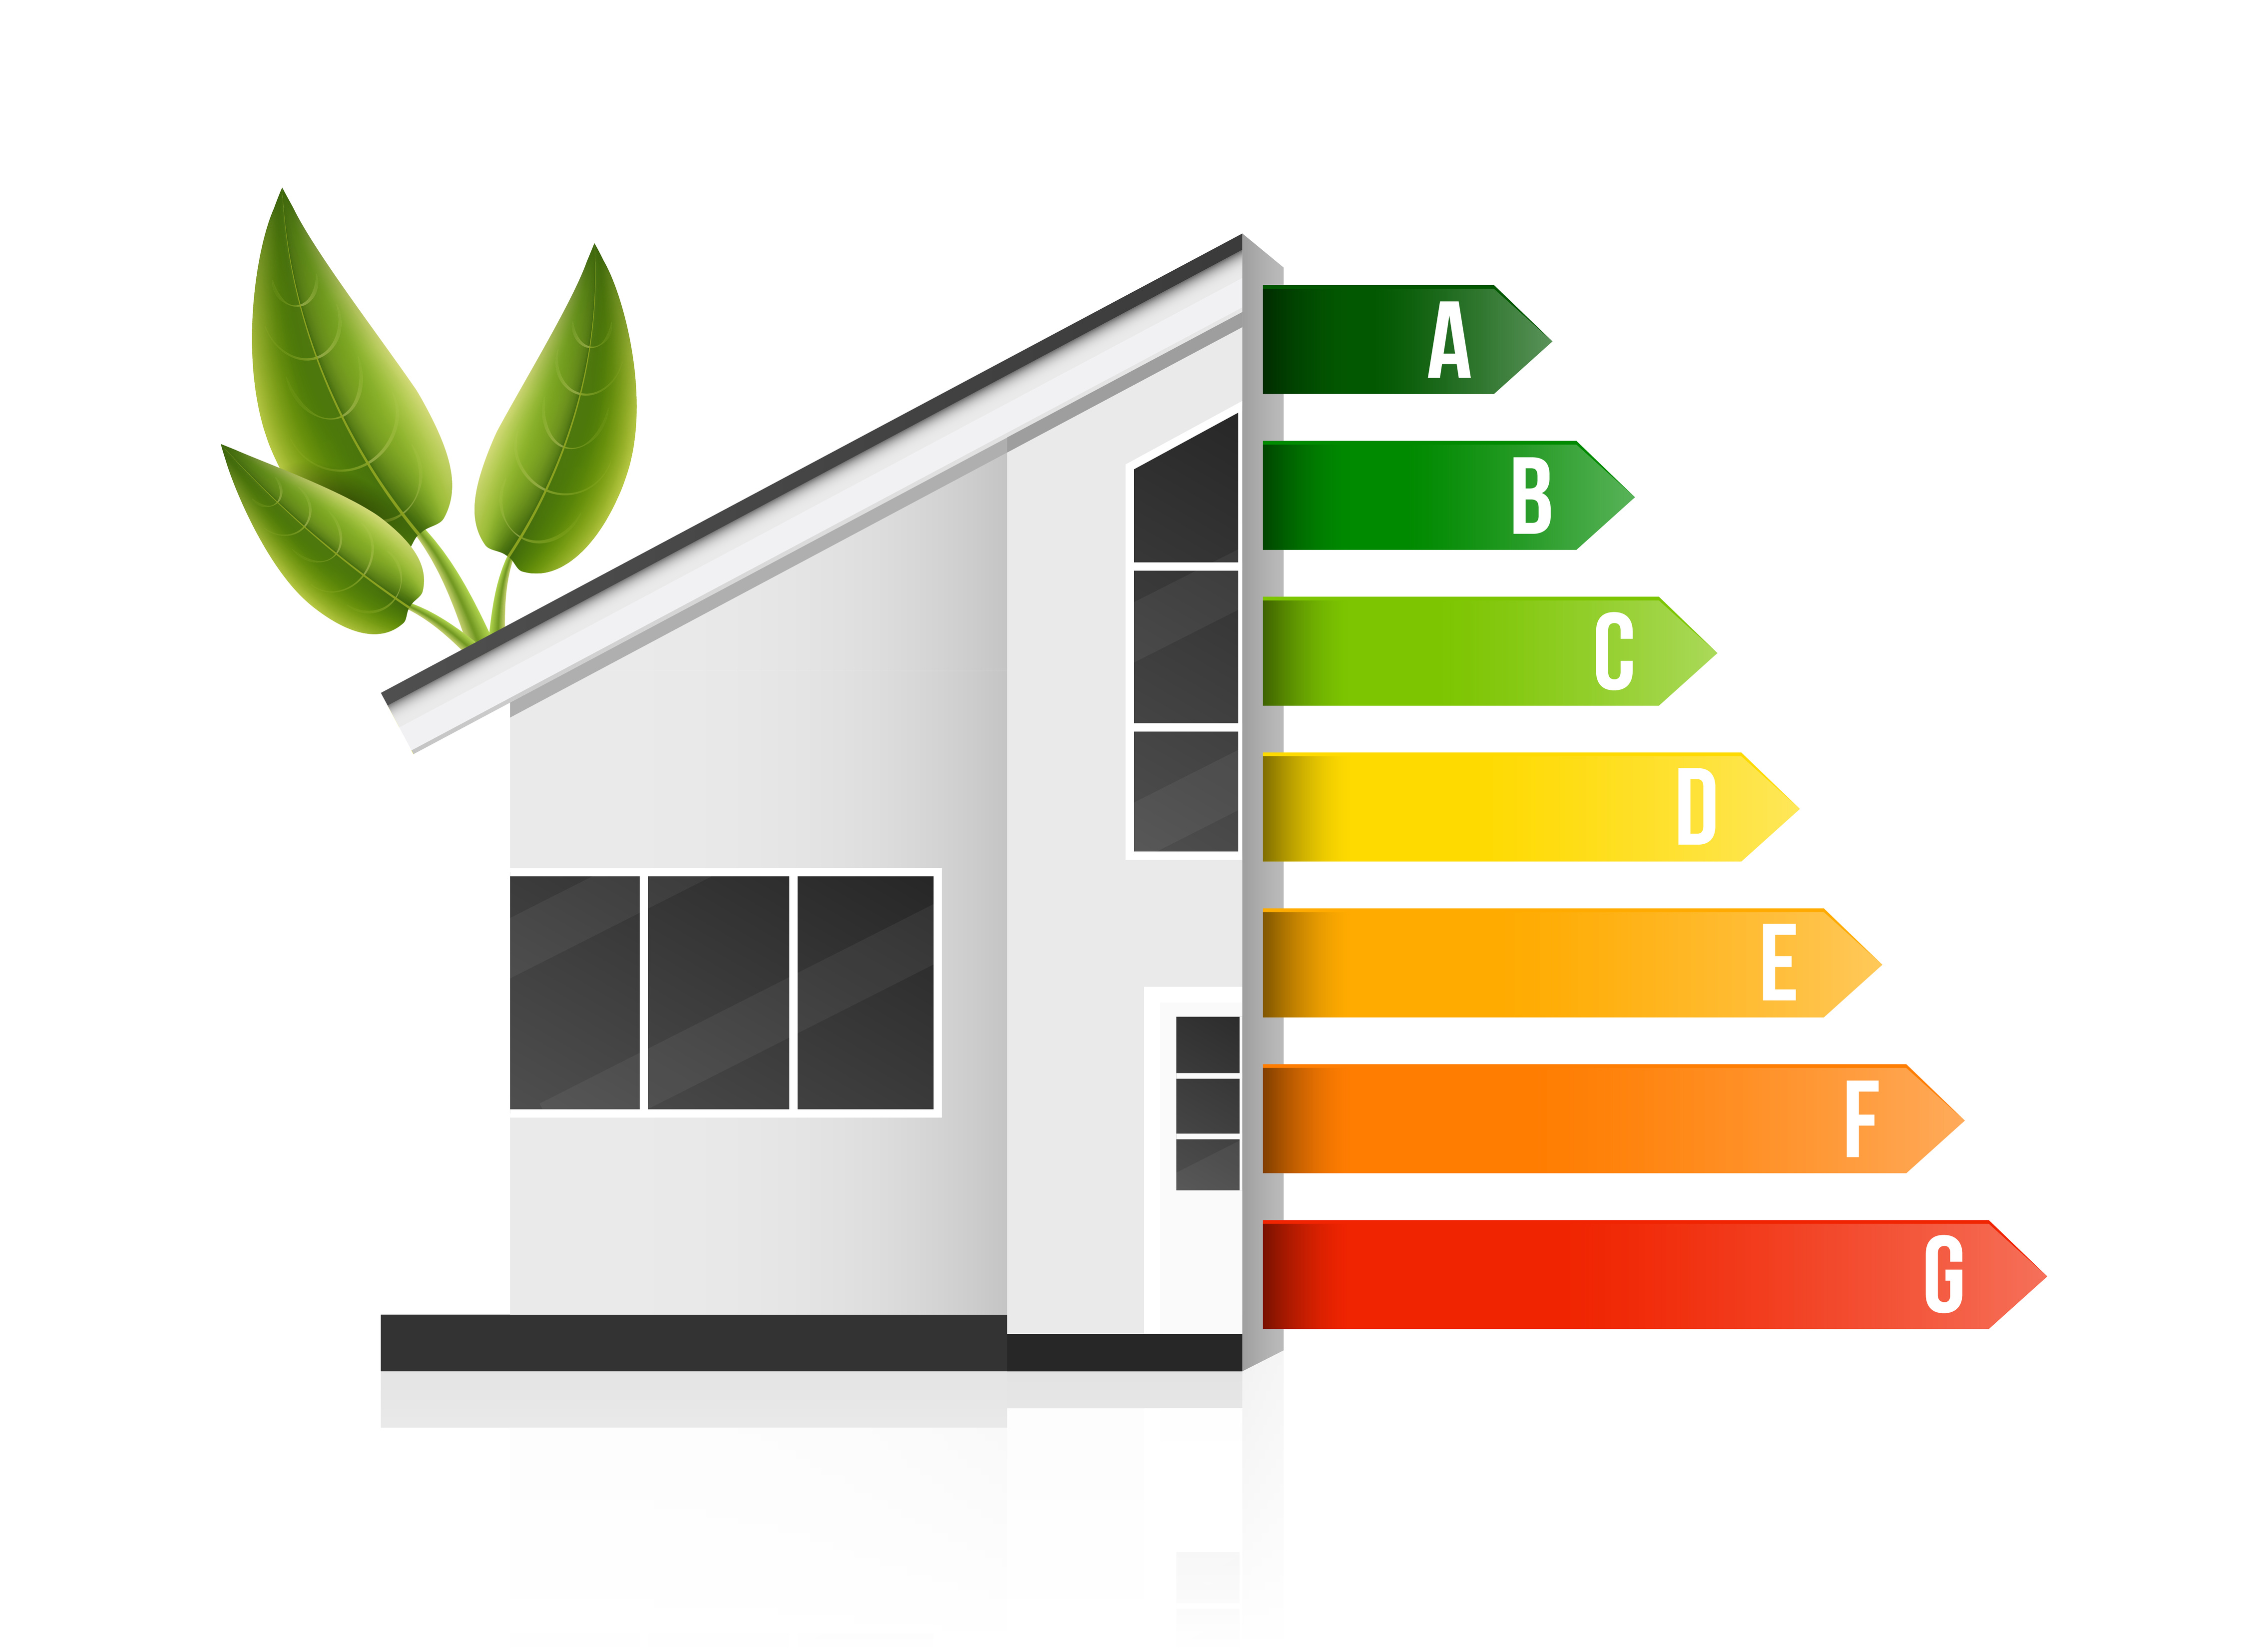 Best energy efficient upgrades to make for a good ROI